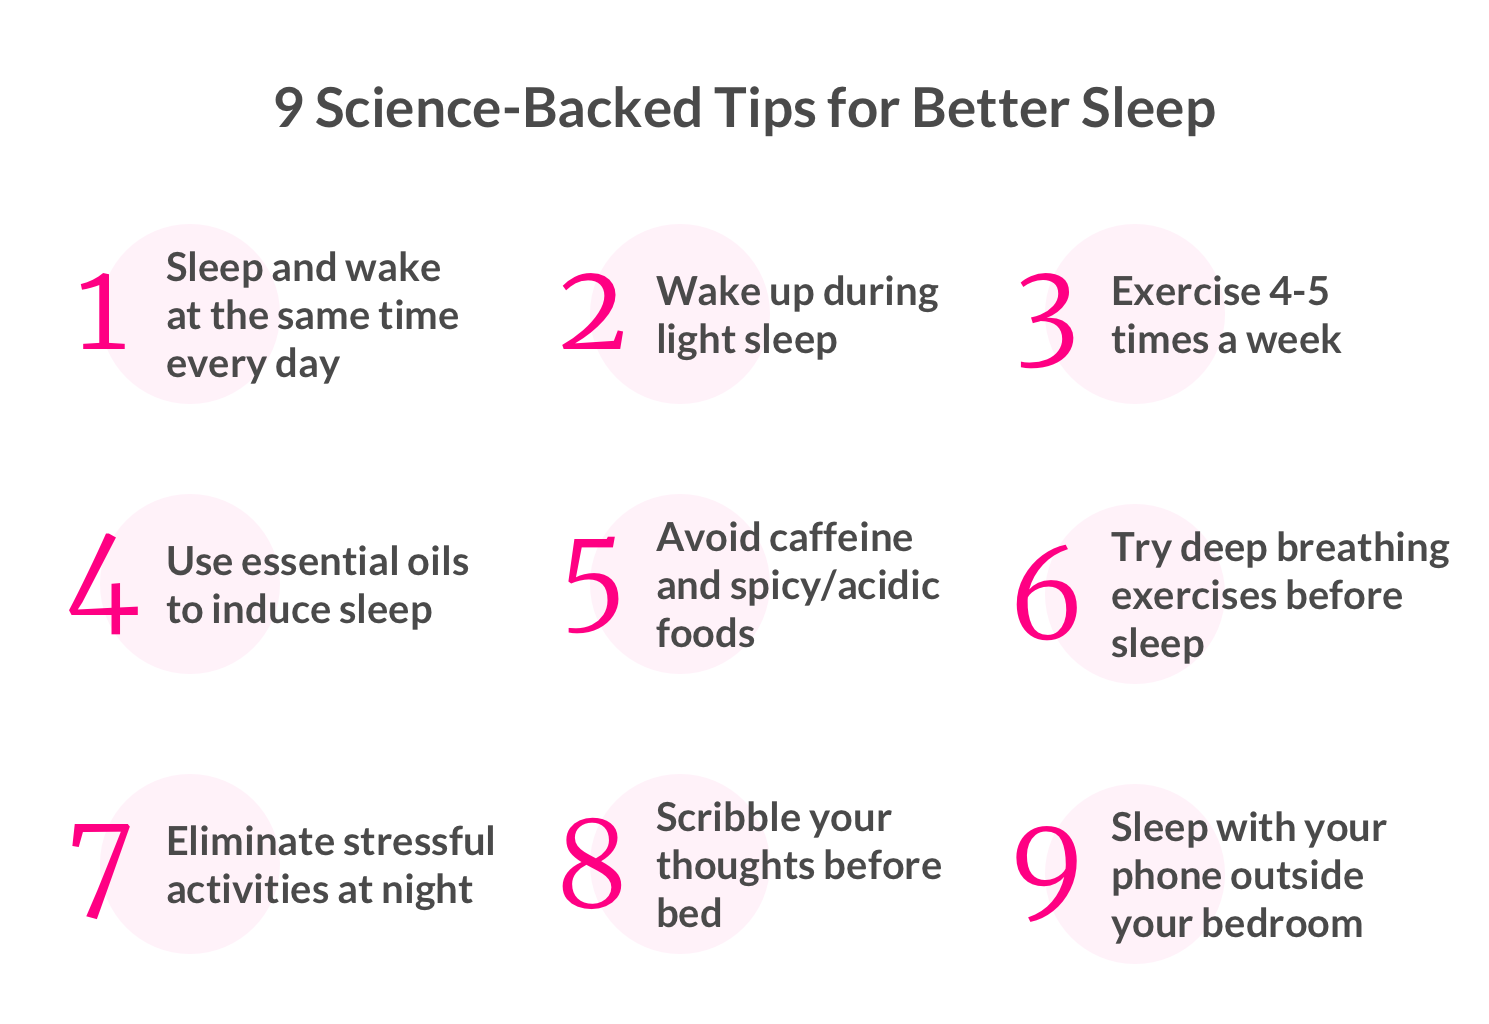 9 Science-Backed Tips for Better Sleep - Lemonade Blog